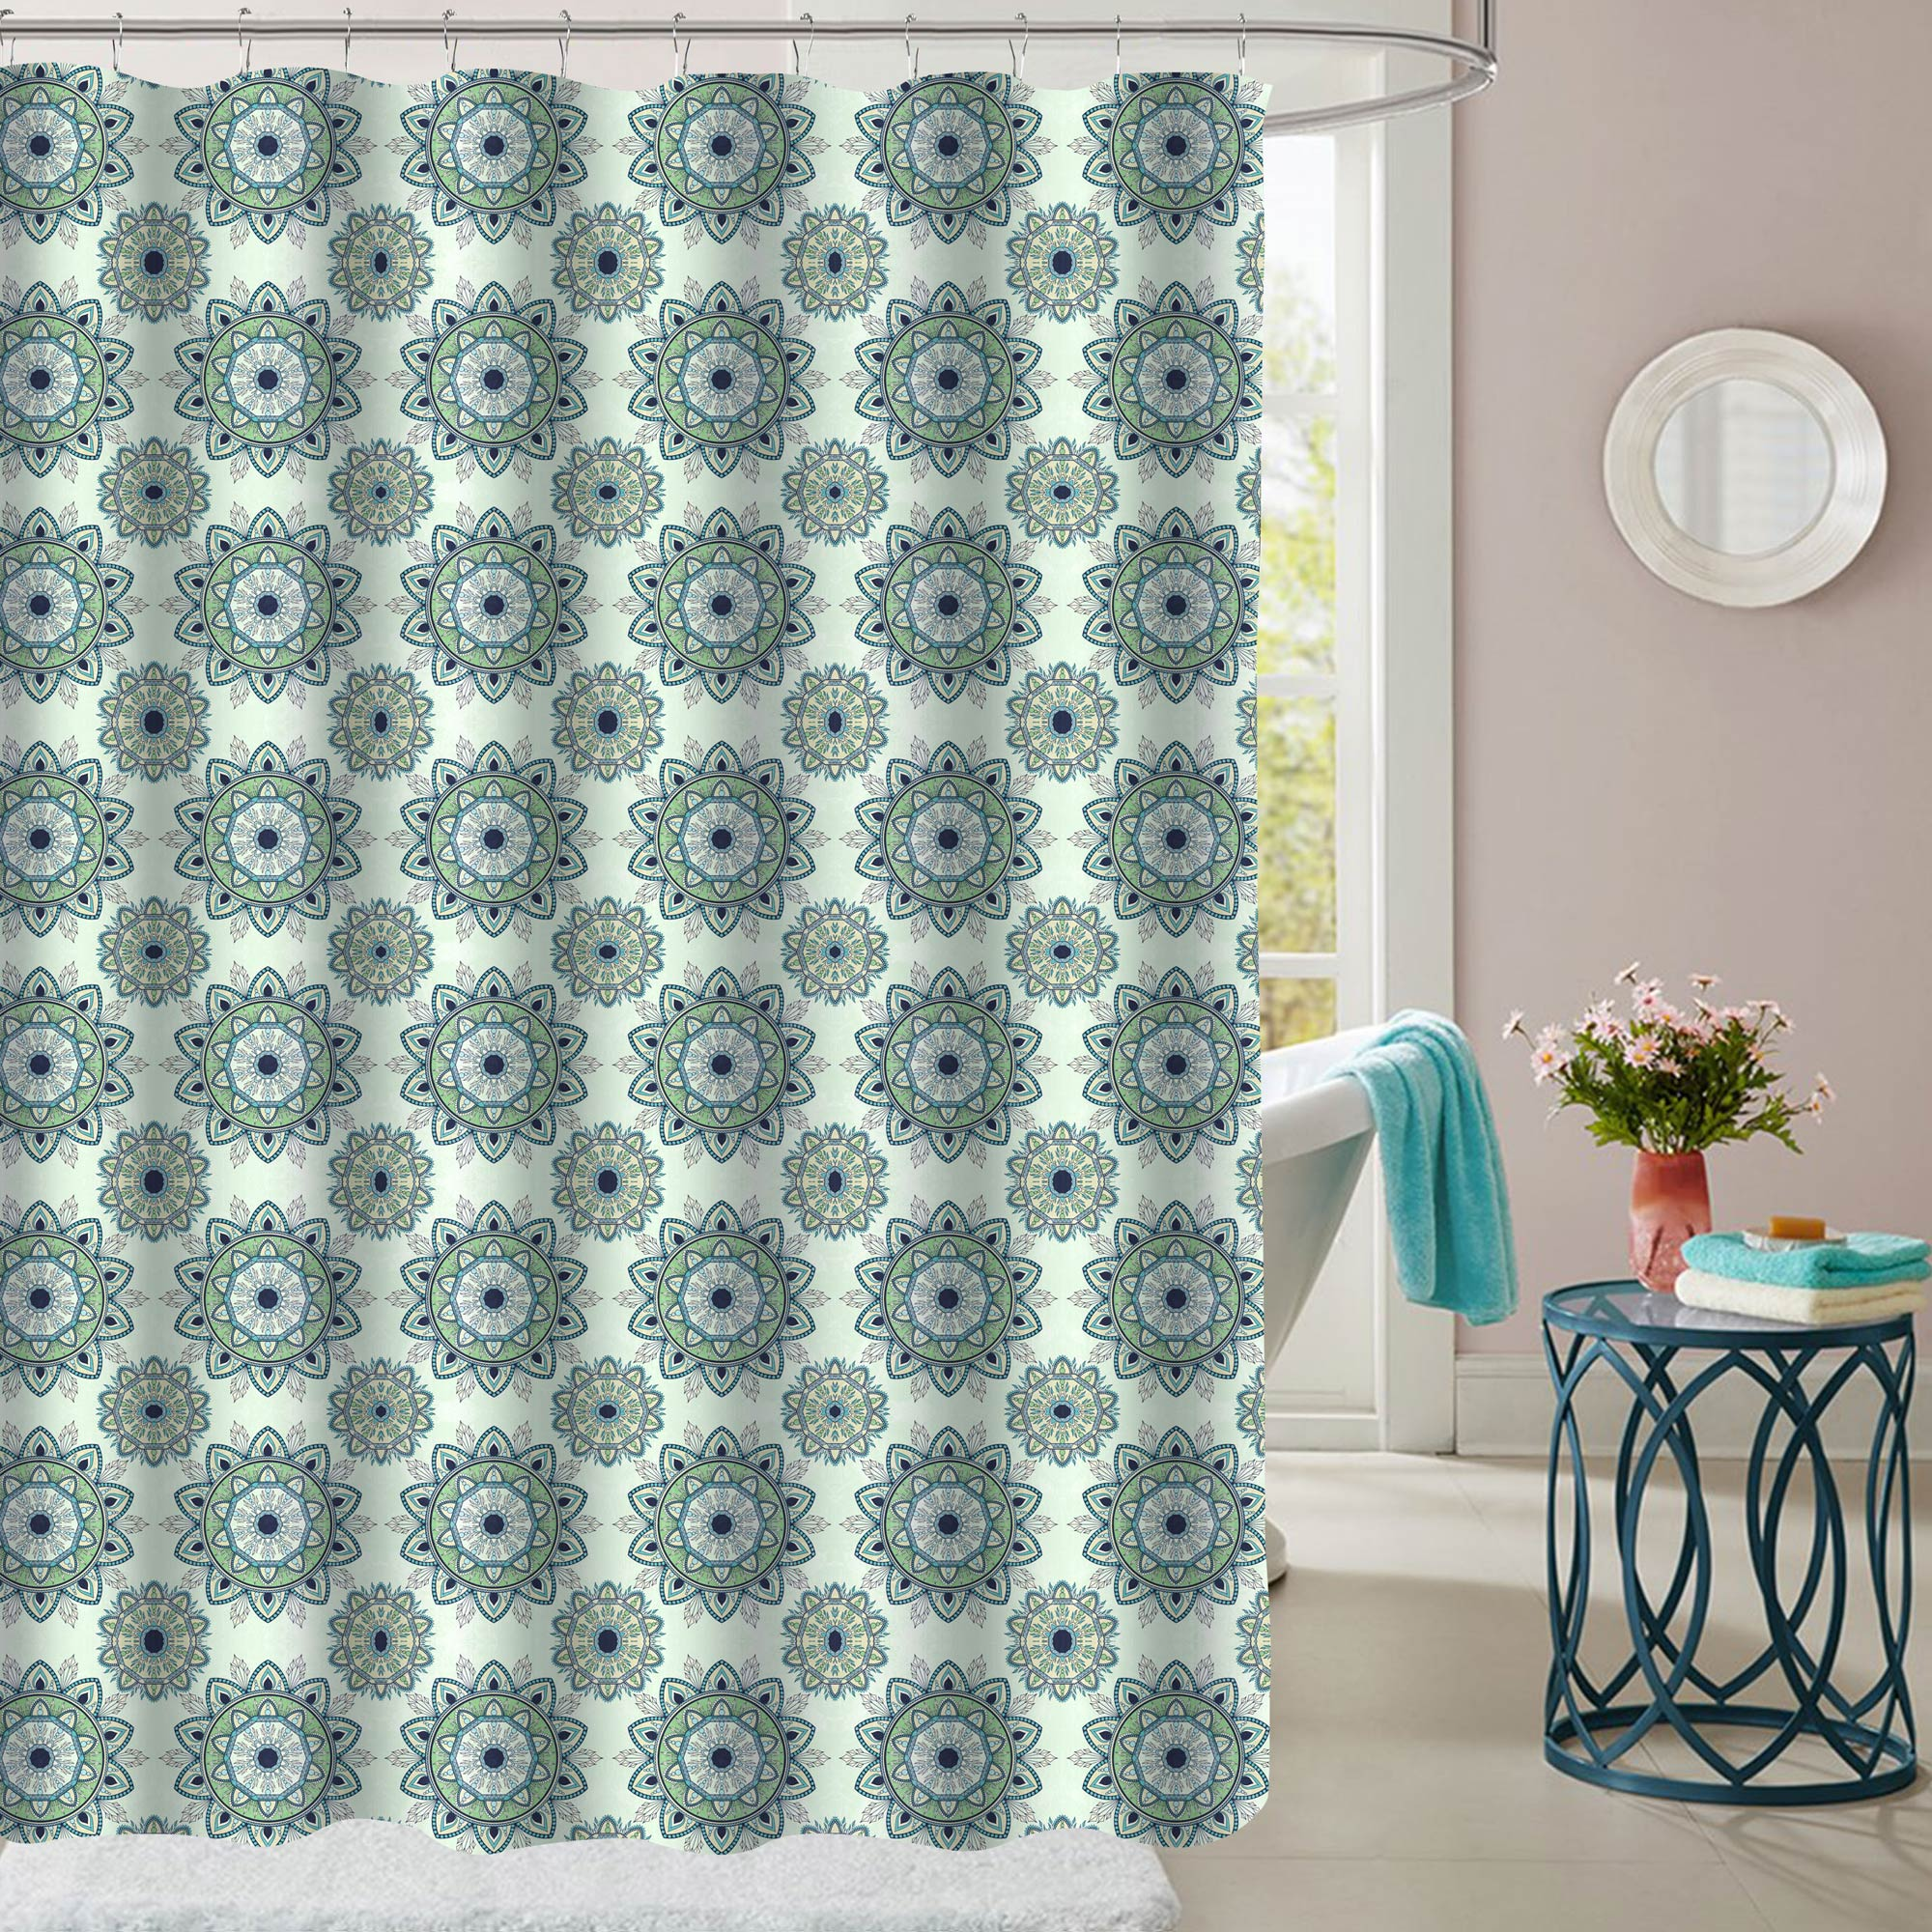 Fabric Shower Curtain 72 X 70 Printed Patterns Floral 15